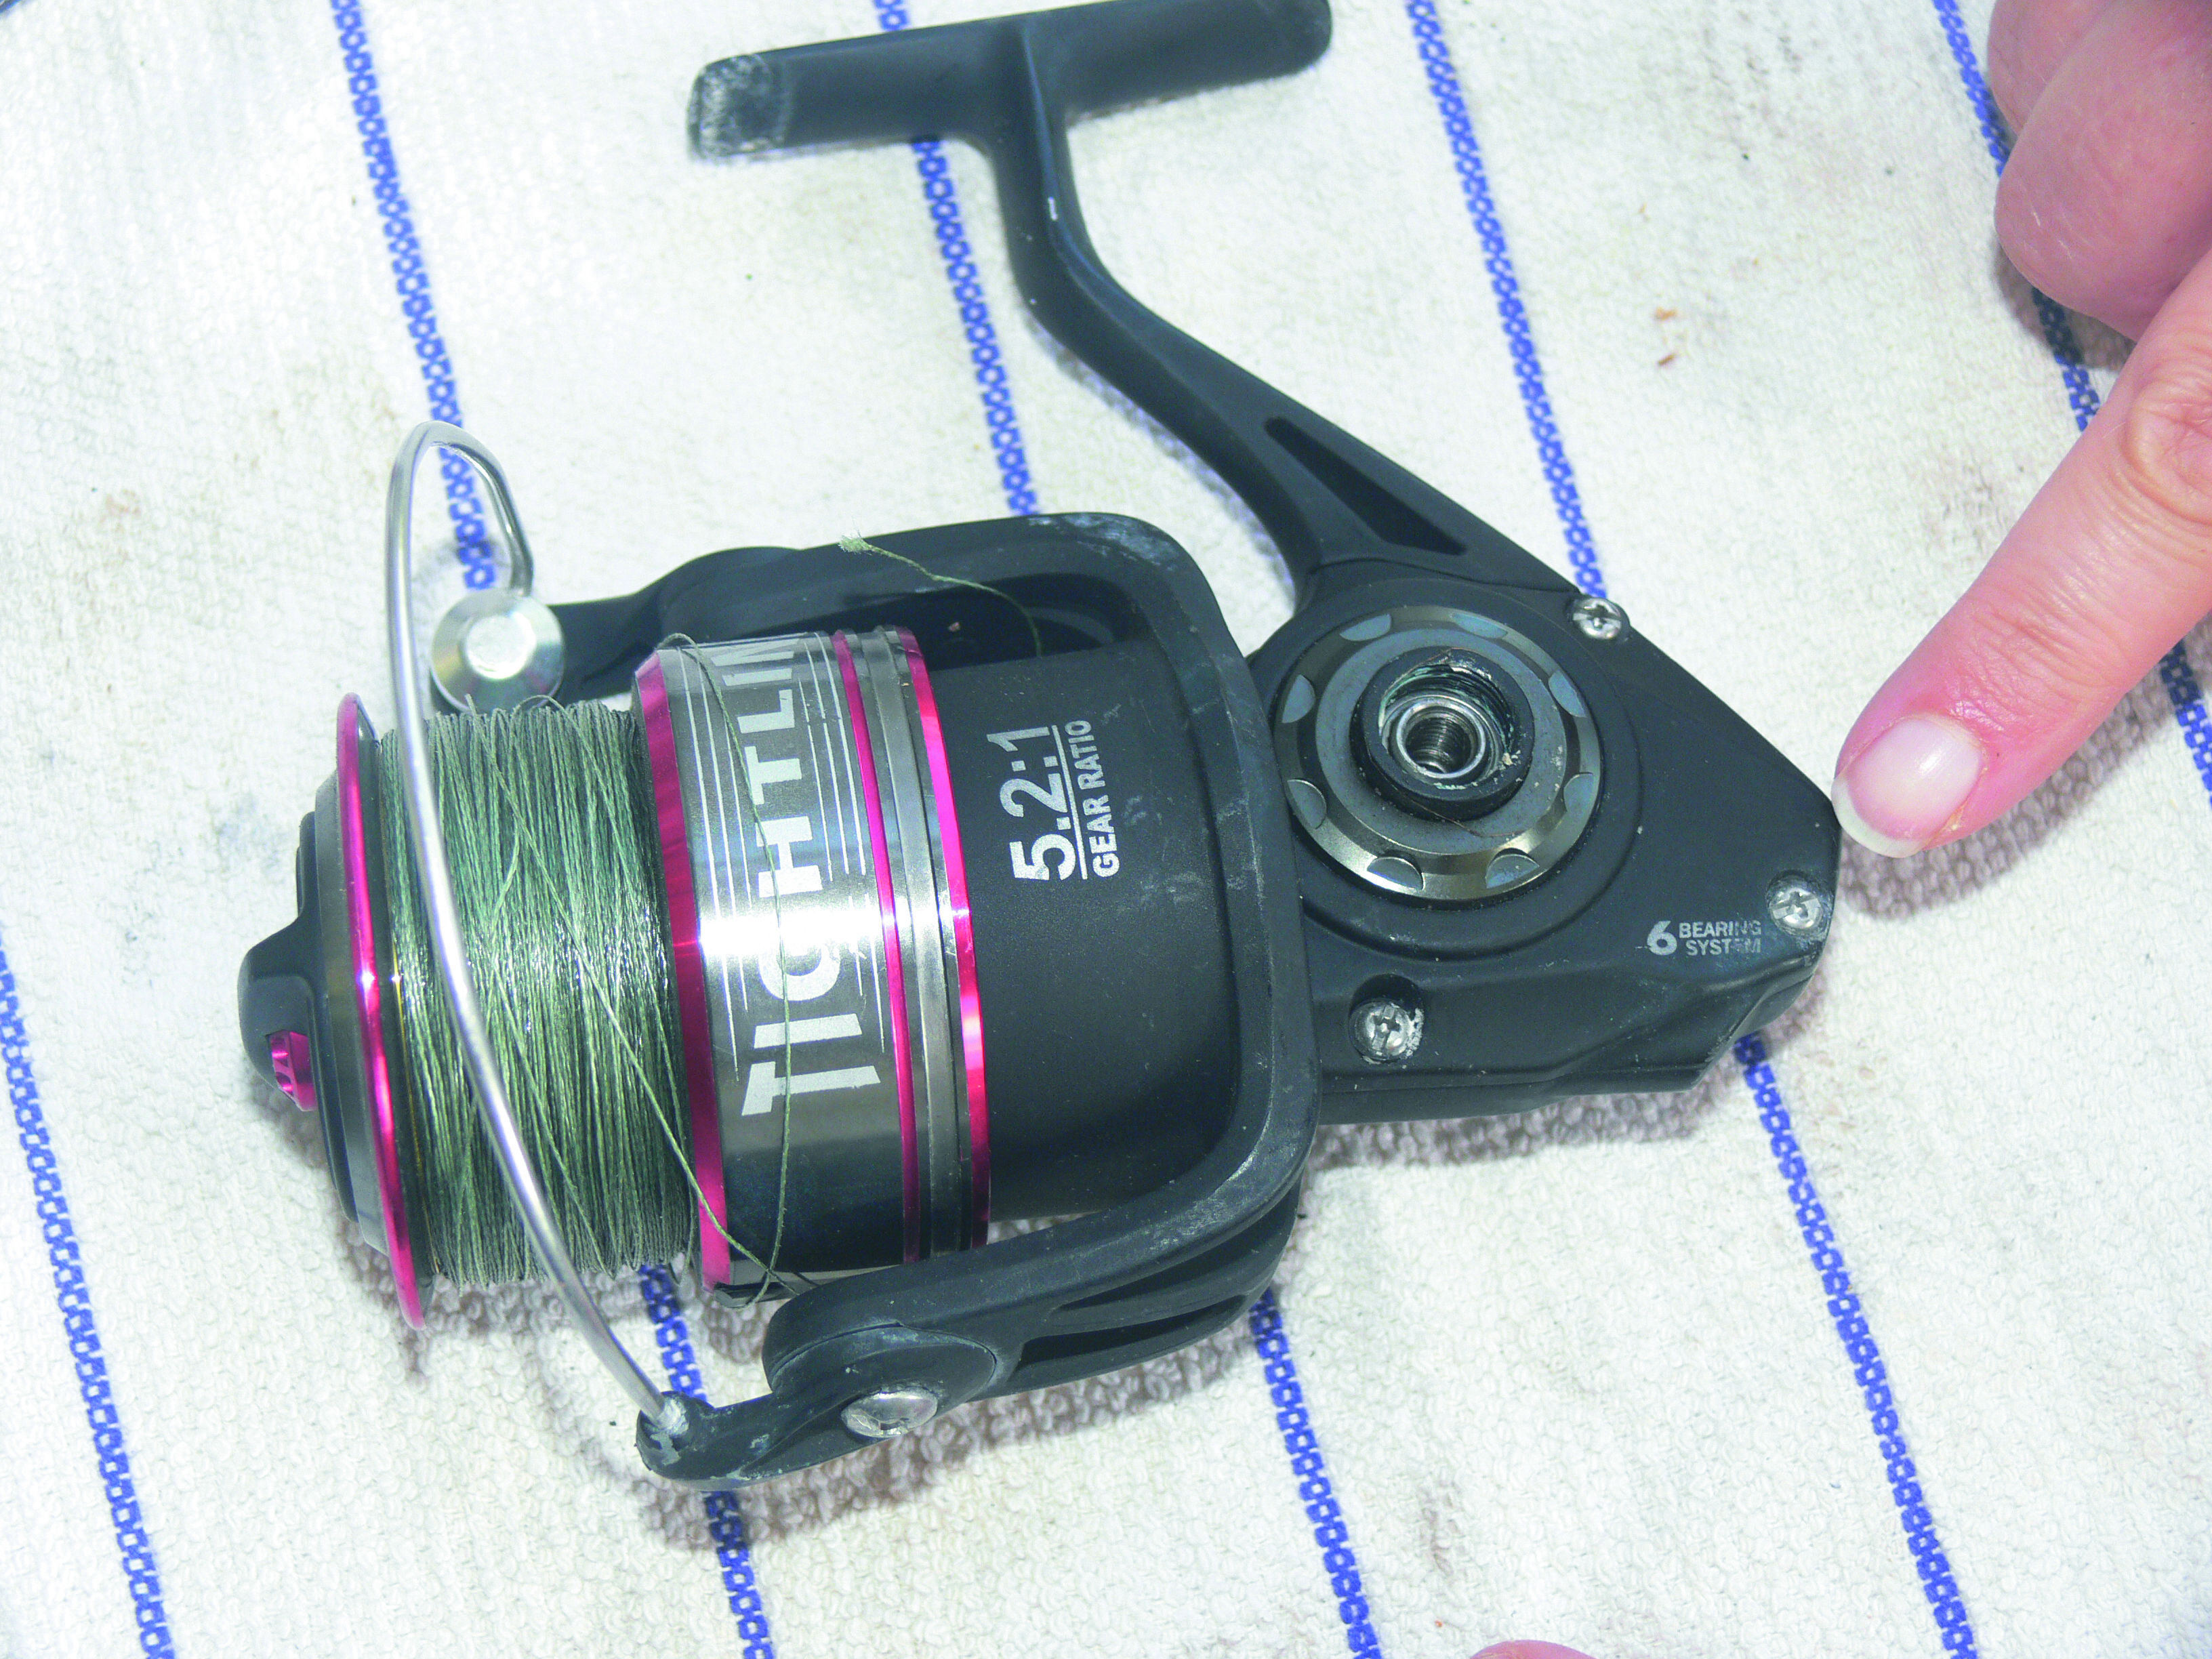 11 Steps to Maintain Your Spinning Reel | Great Days Outdoors